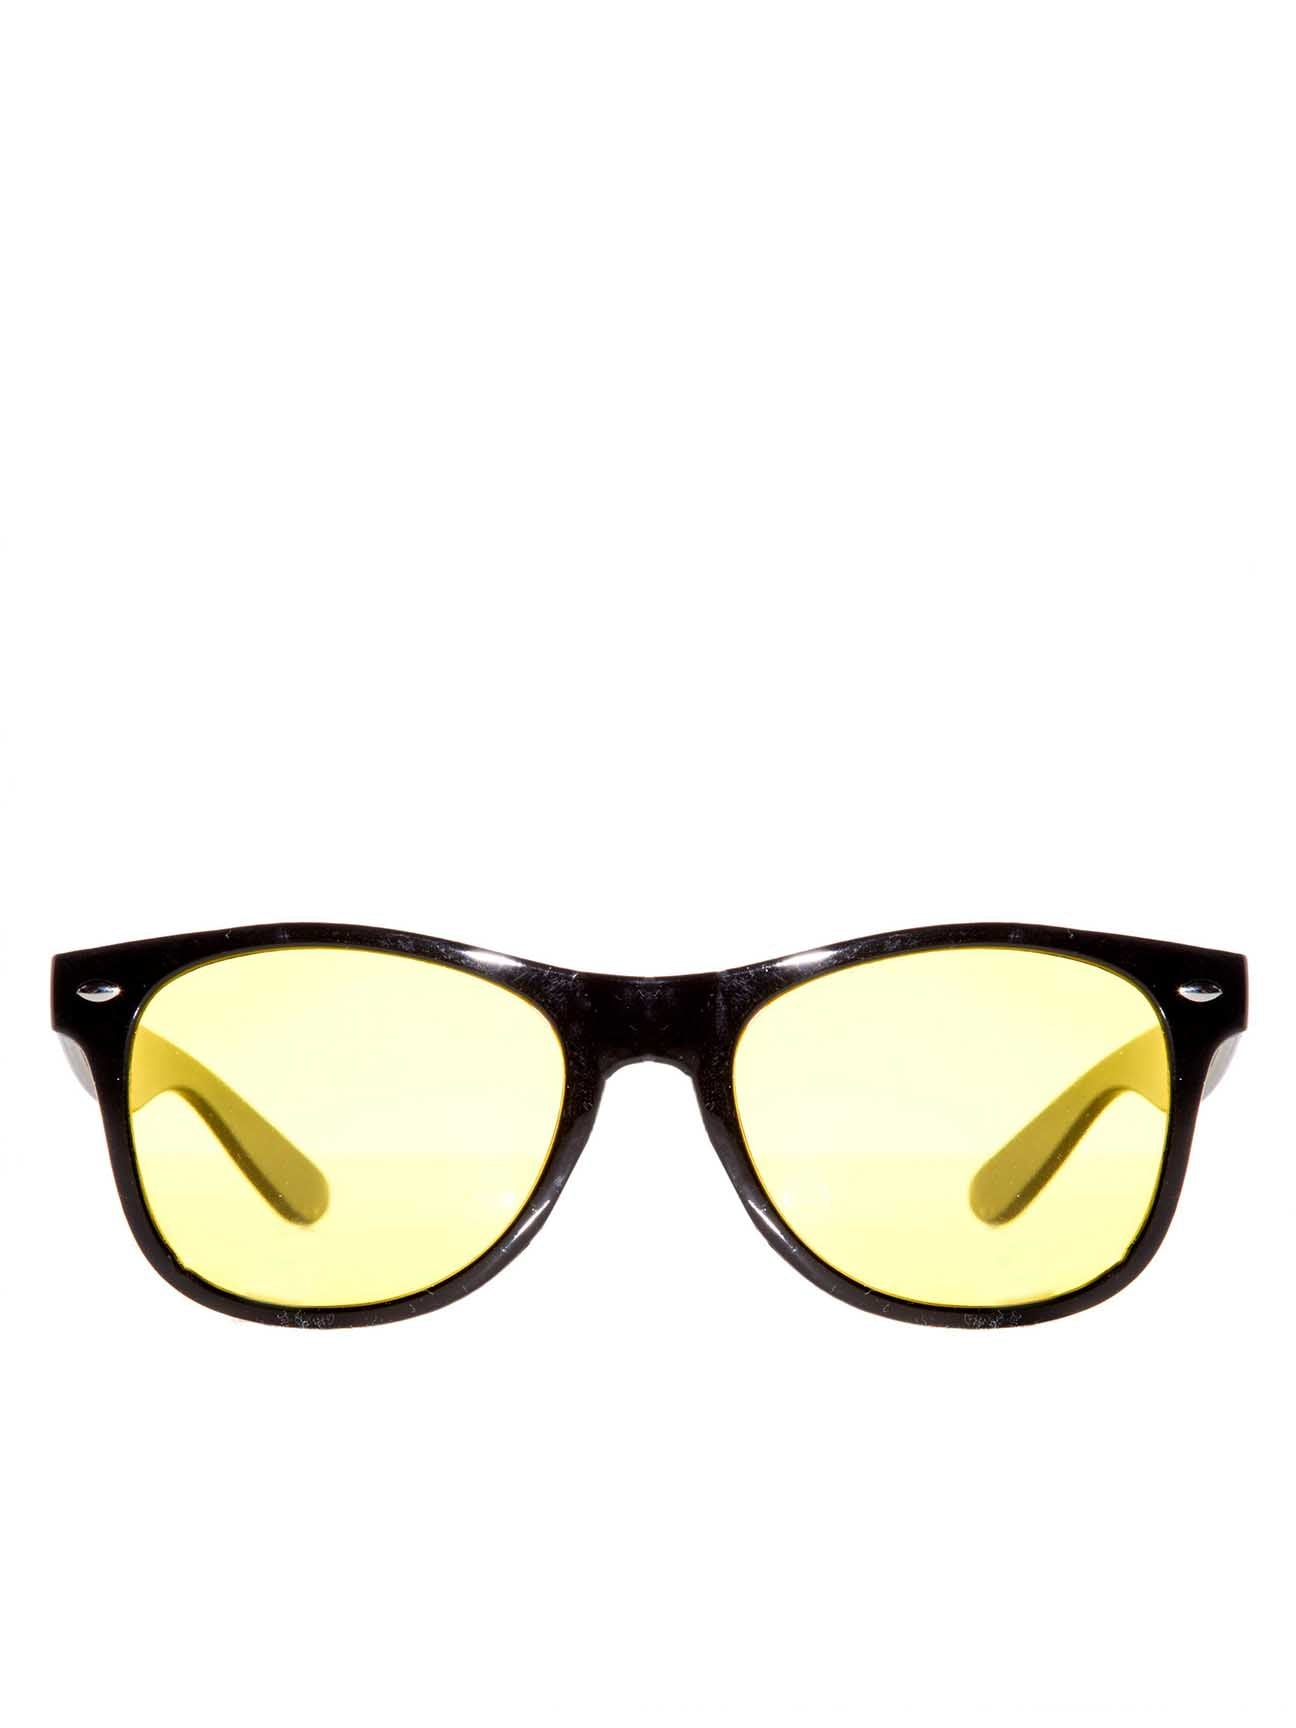 Black Wayfarer Sunglasses with Yellow Lenses